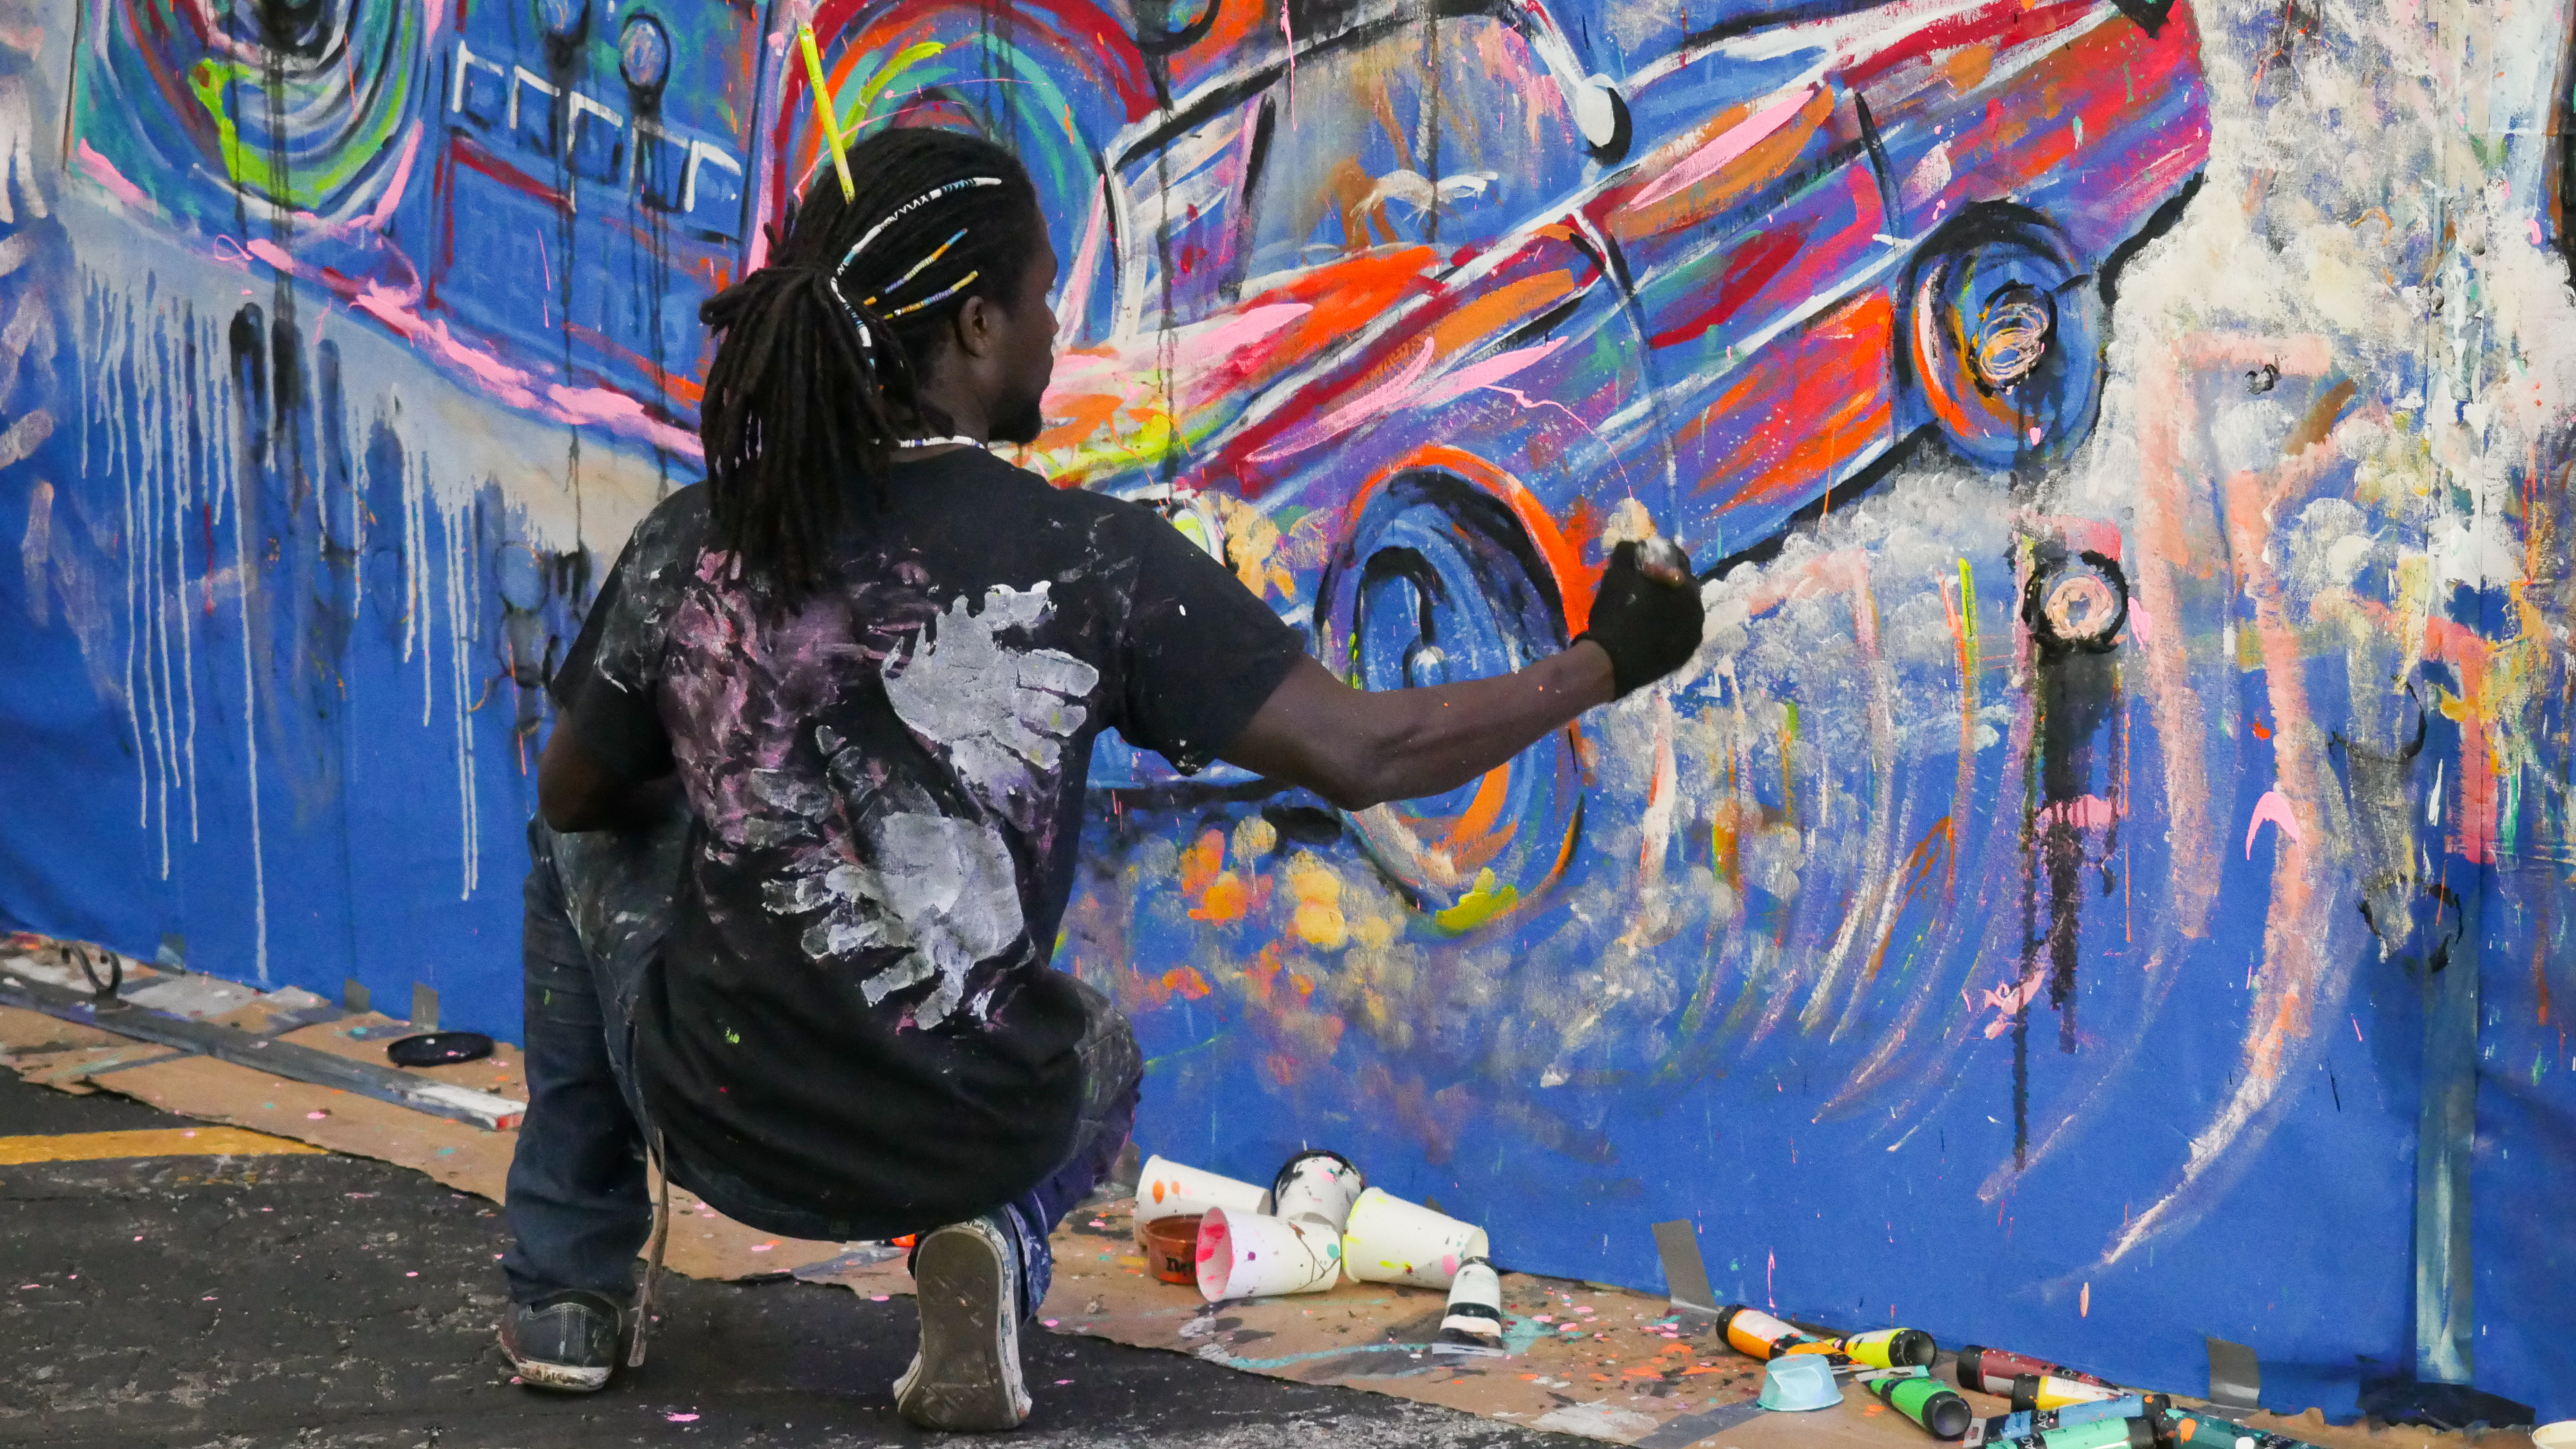 Art Collective performing a live art demonstration during the IgNight Market, Saturday, September 21, 2019 (WCWF/ Beni Petersen)